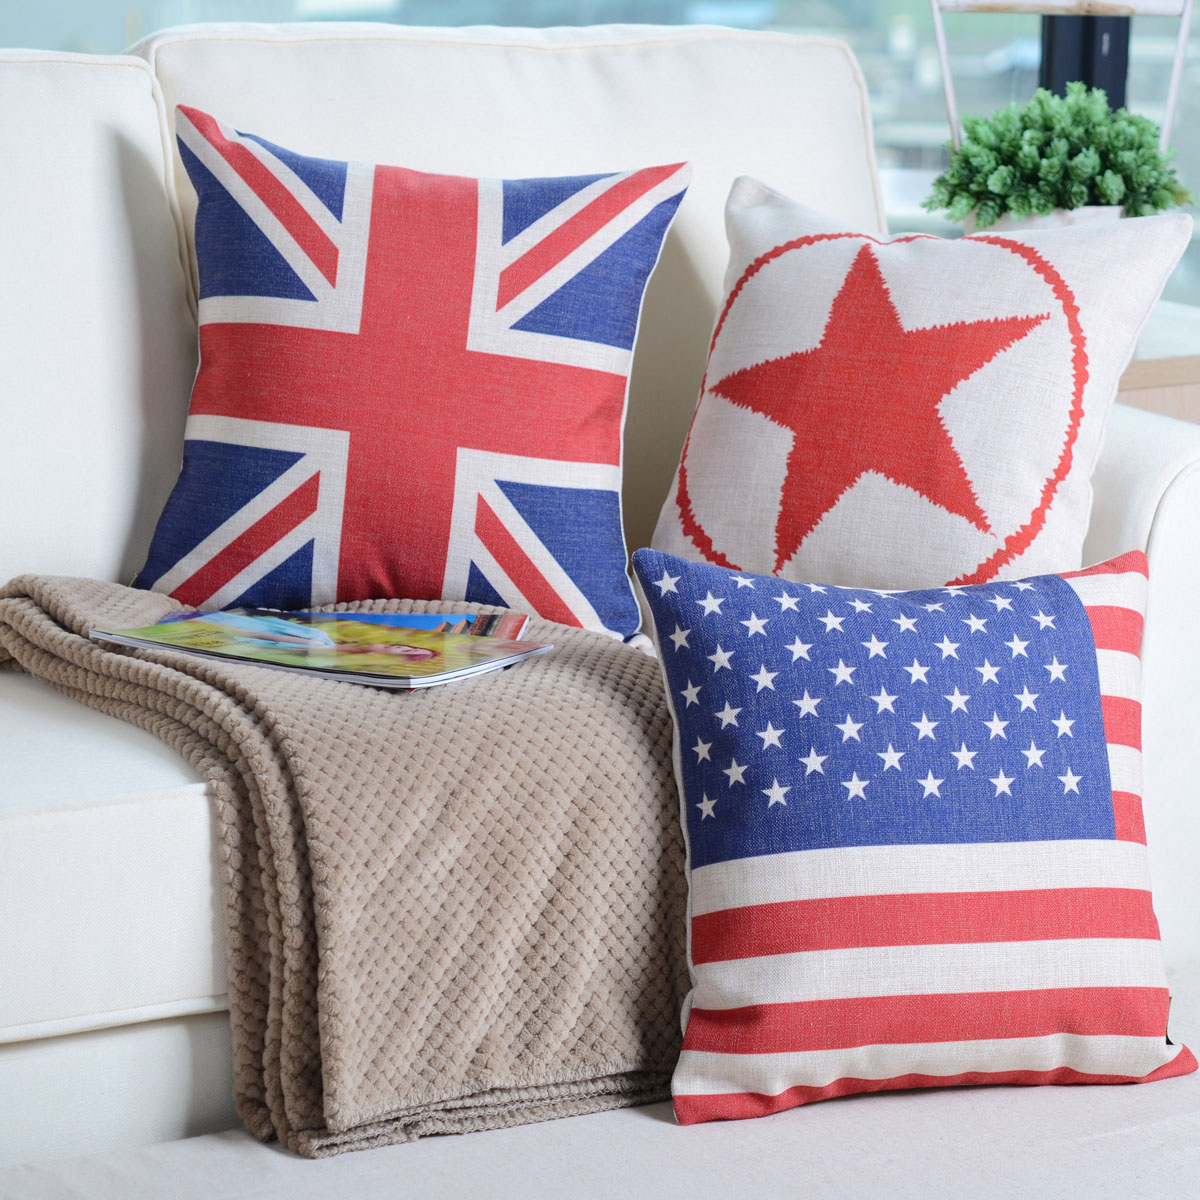 Village color cotton pillow is a union jack cushion core american village blankets air conditioning is cool in summer blanket flag